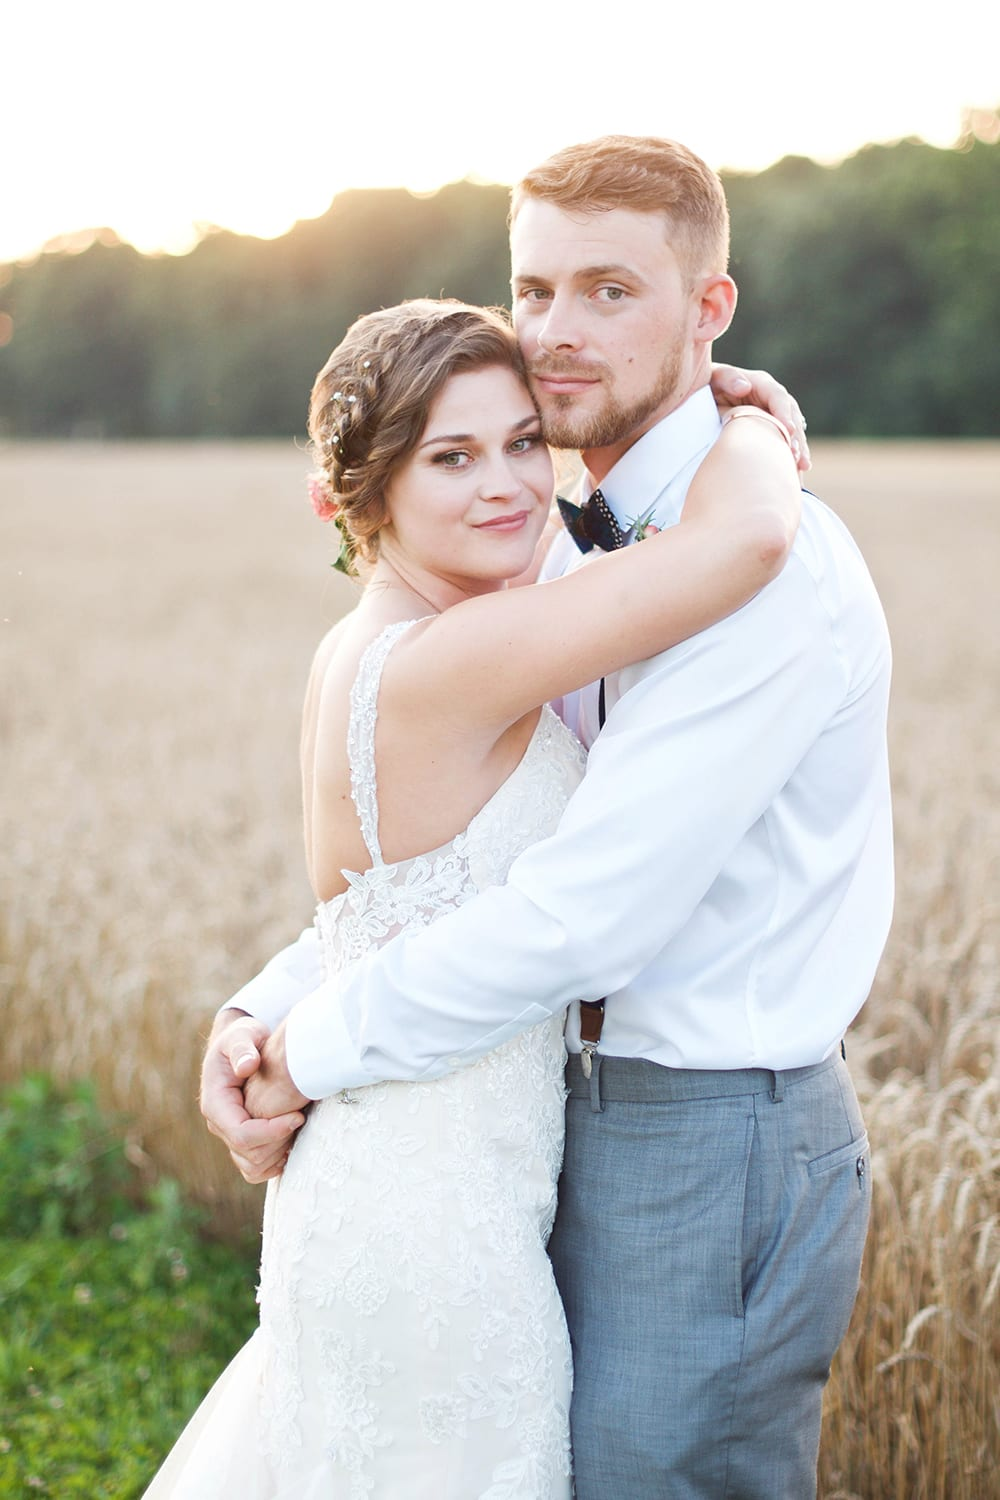 Bride and Groom at their Asheville Wedding